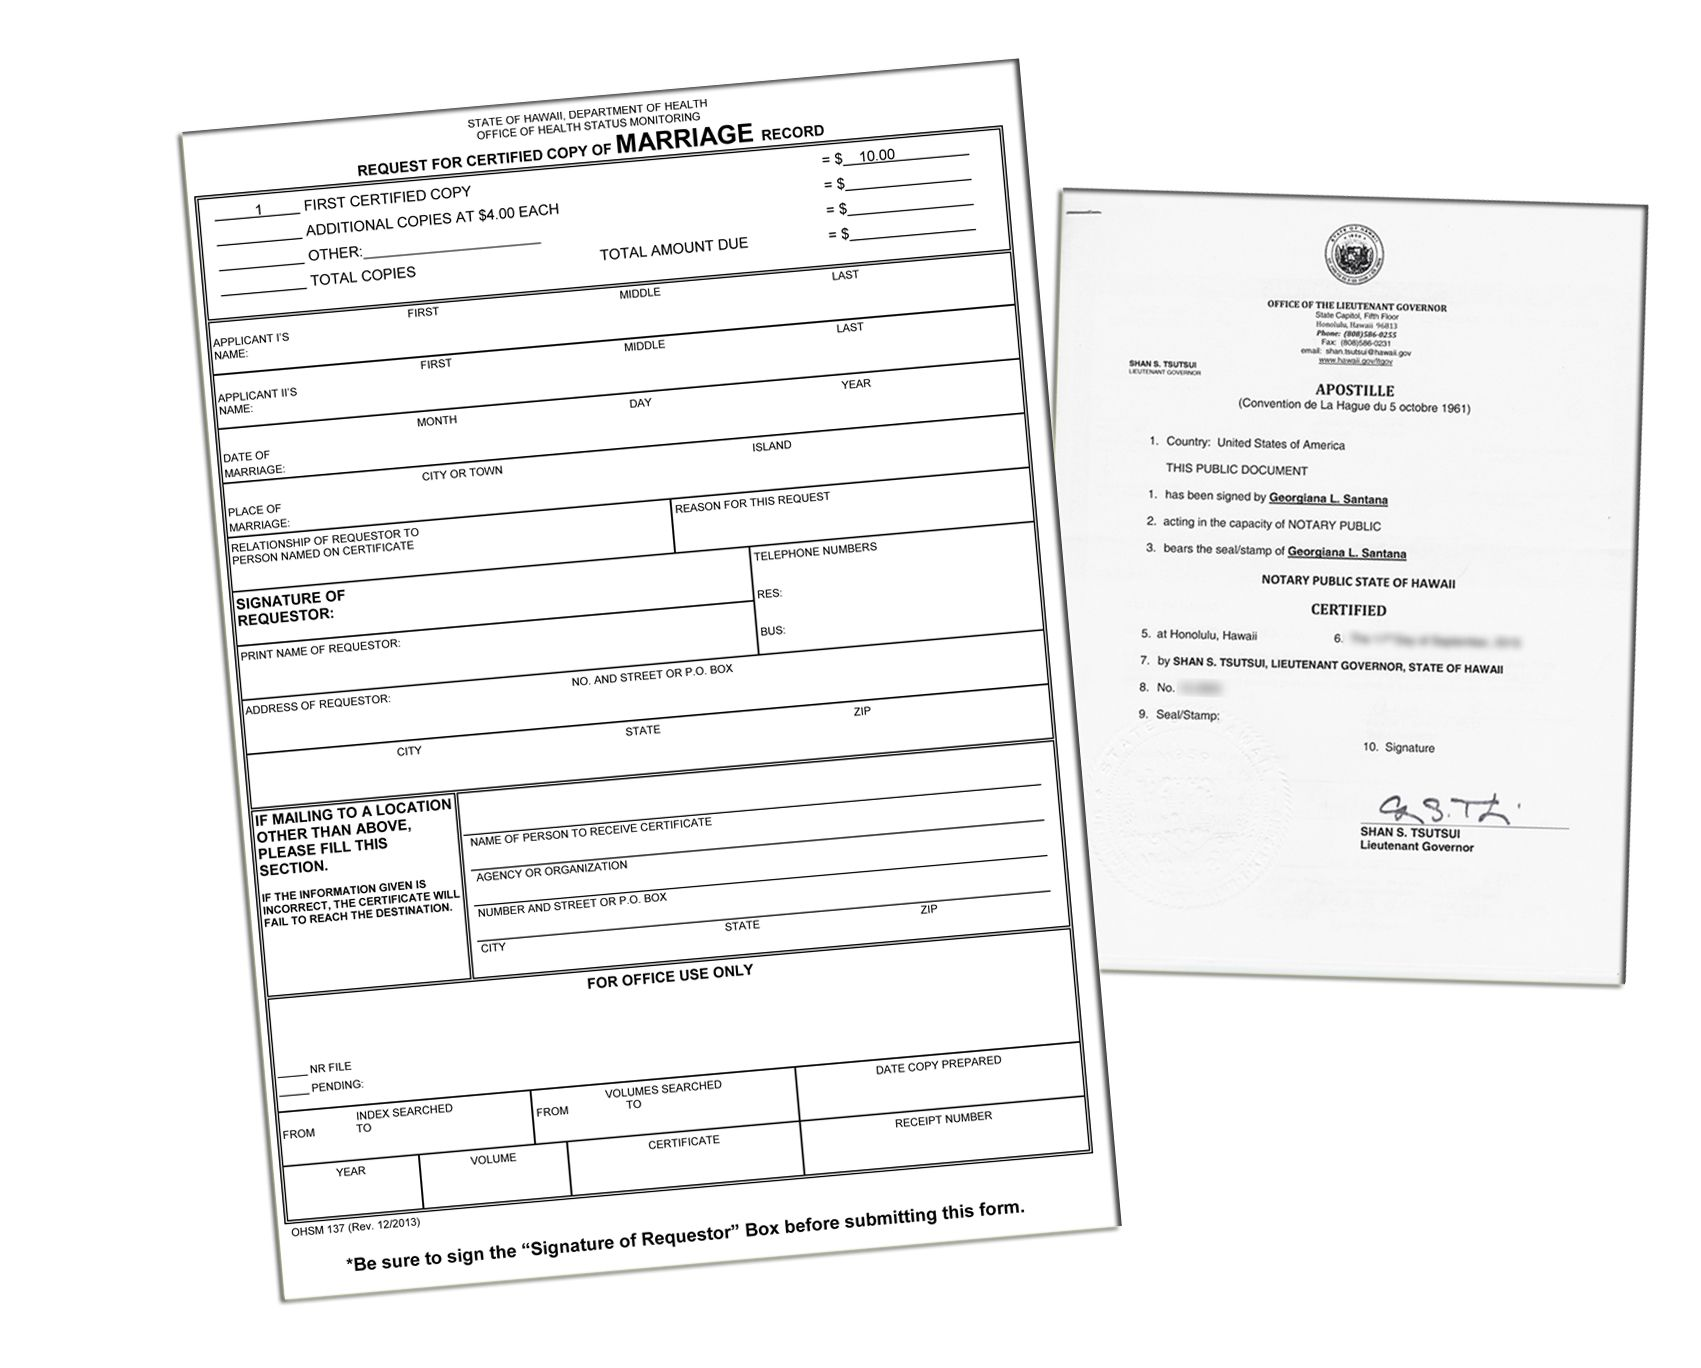 Hawaii Health Department Certification Application form